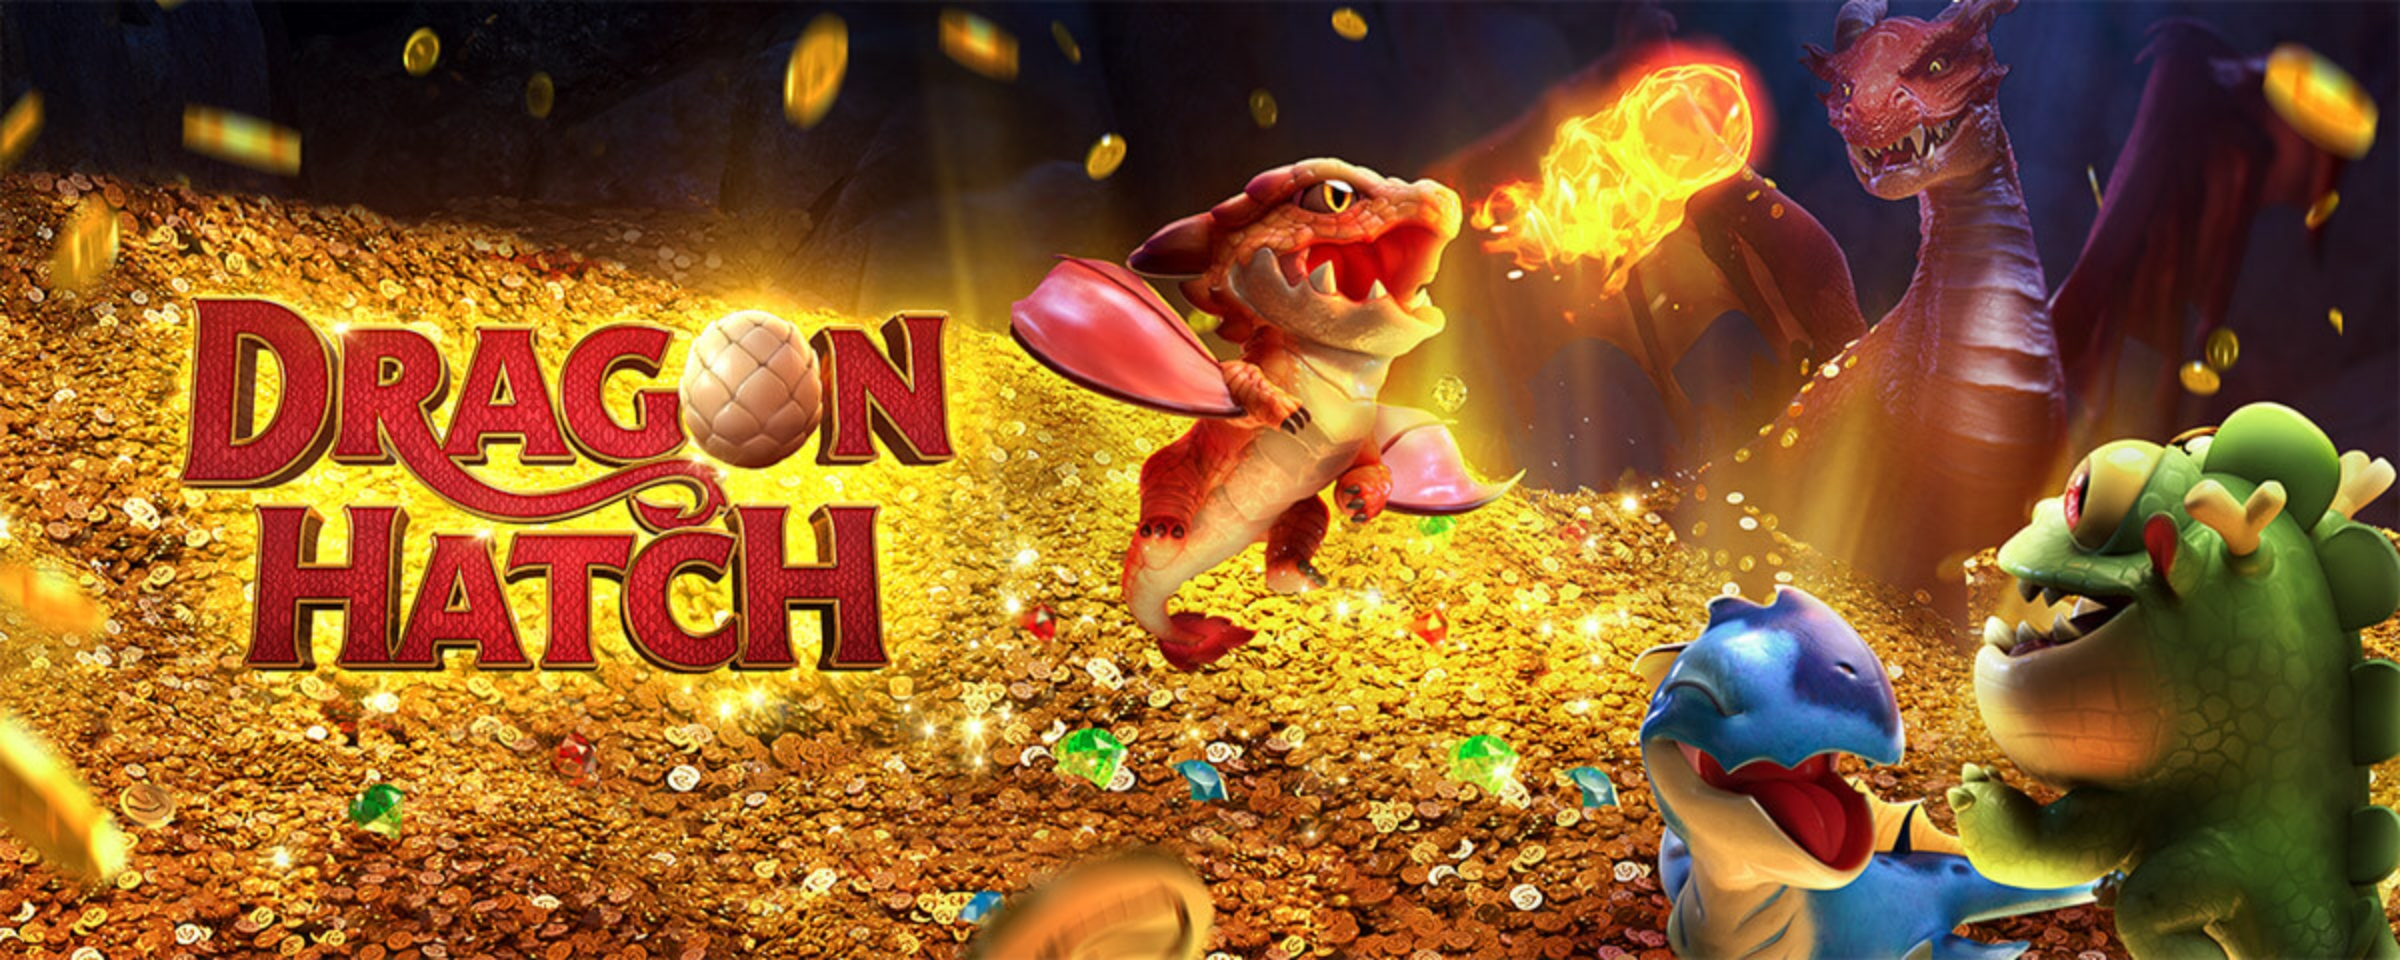 The Dragon Hatch Online Slot Demo Game by PG Soft